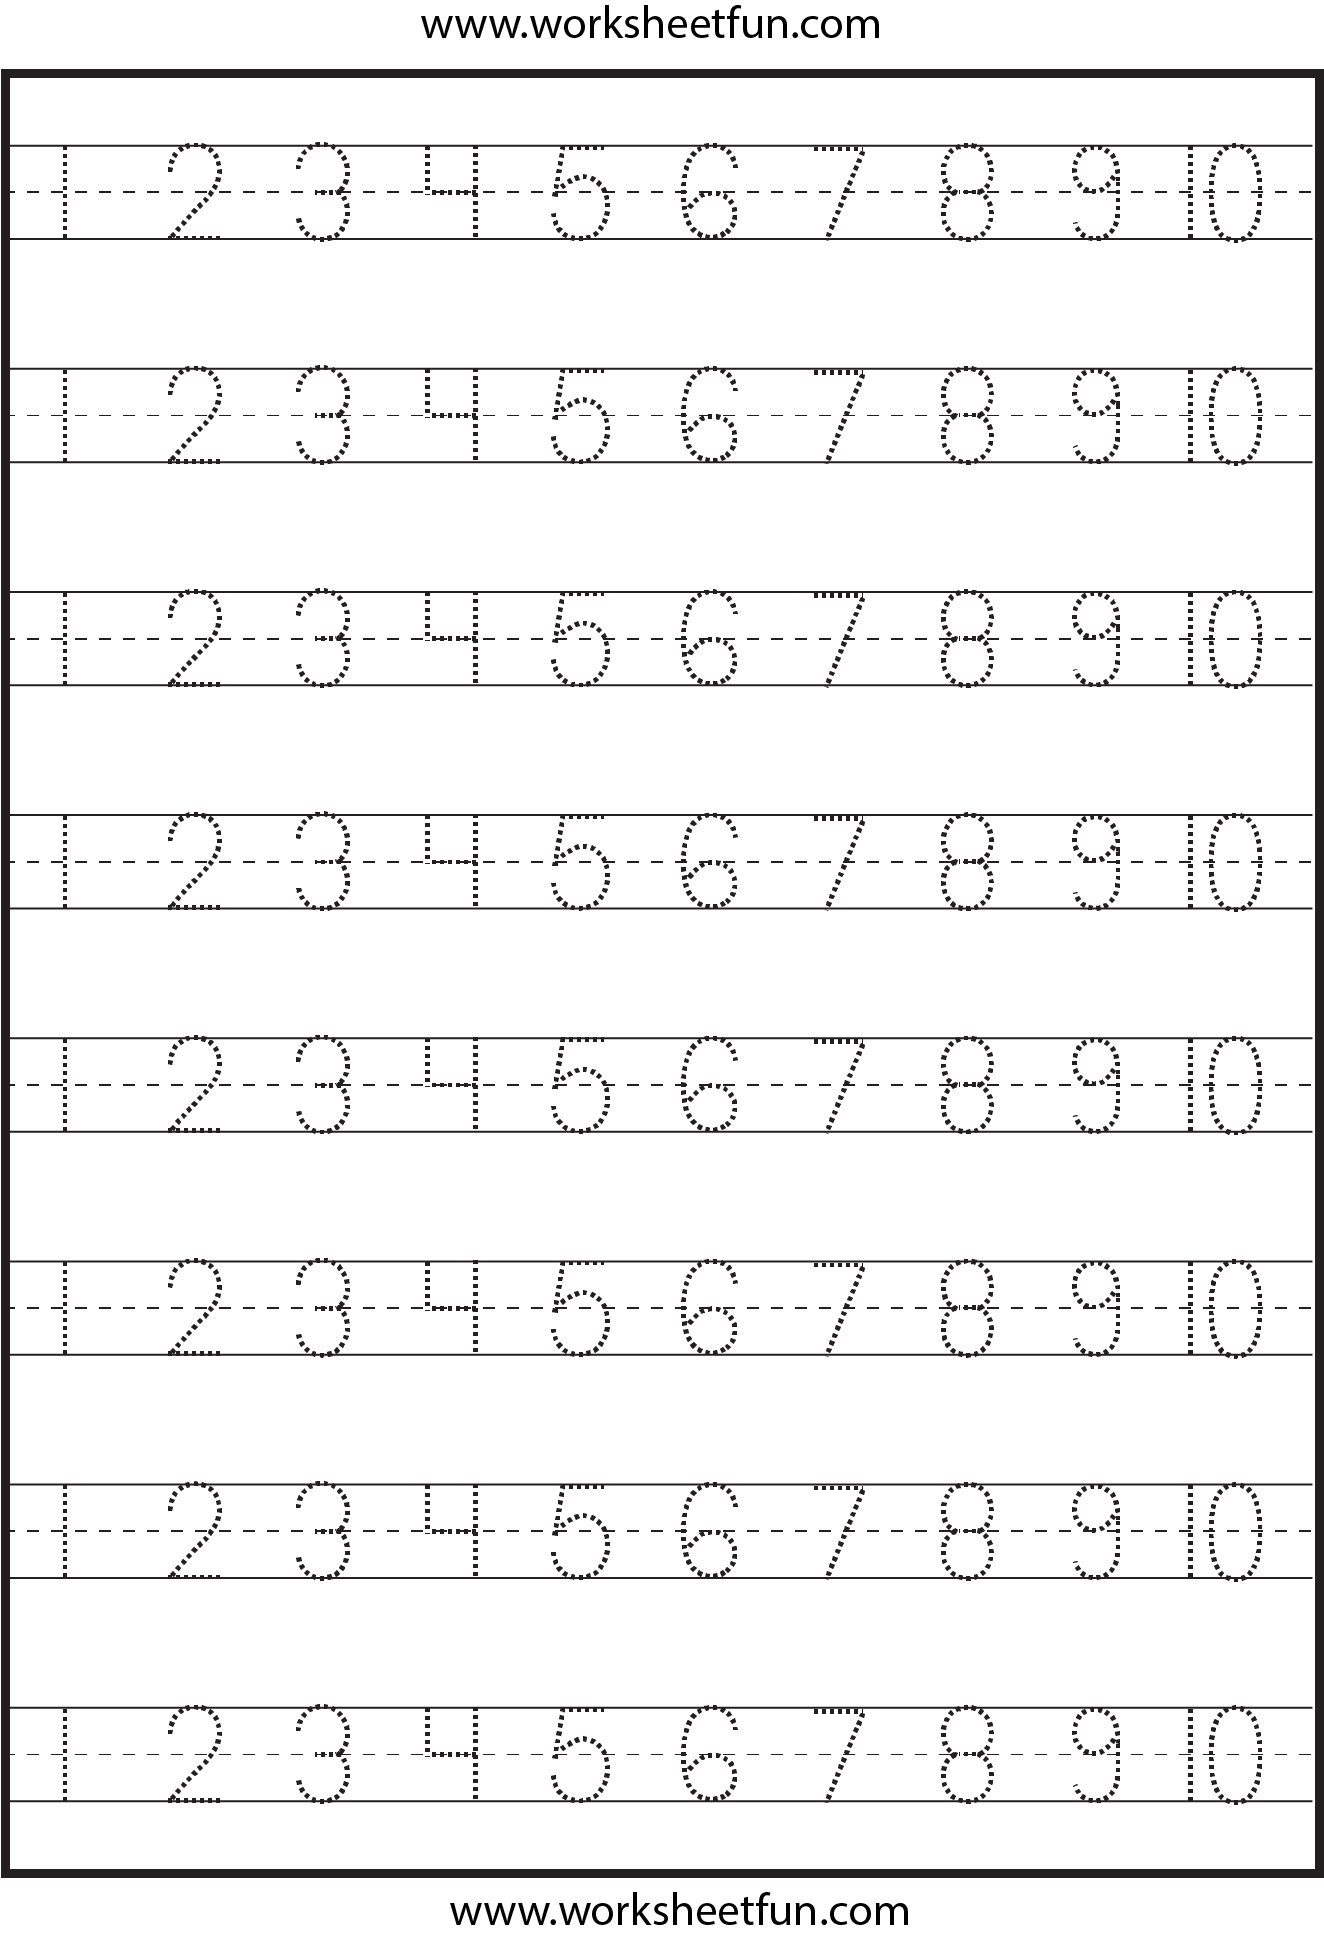 Worksheets Numbers Tracing number tracing 1 10 worksheet free printable worksheets tracing